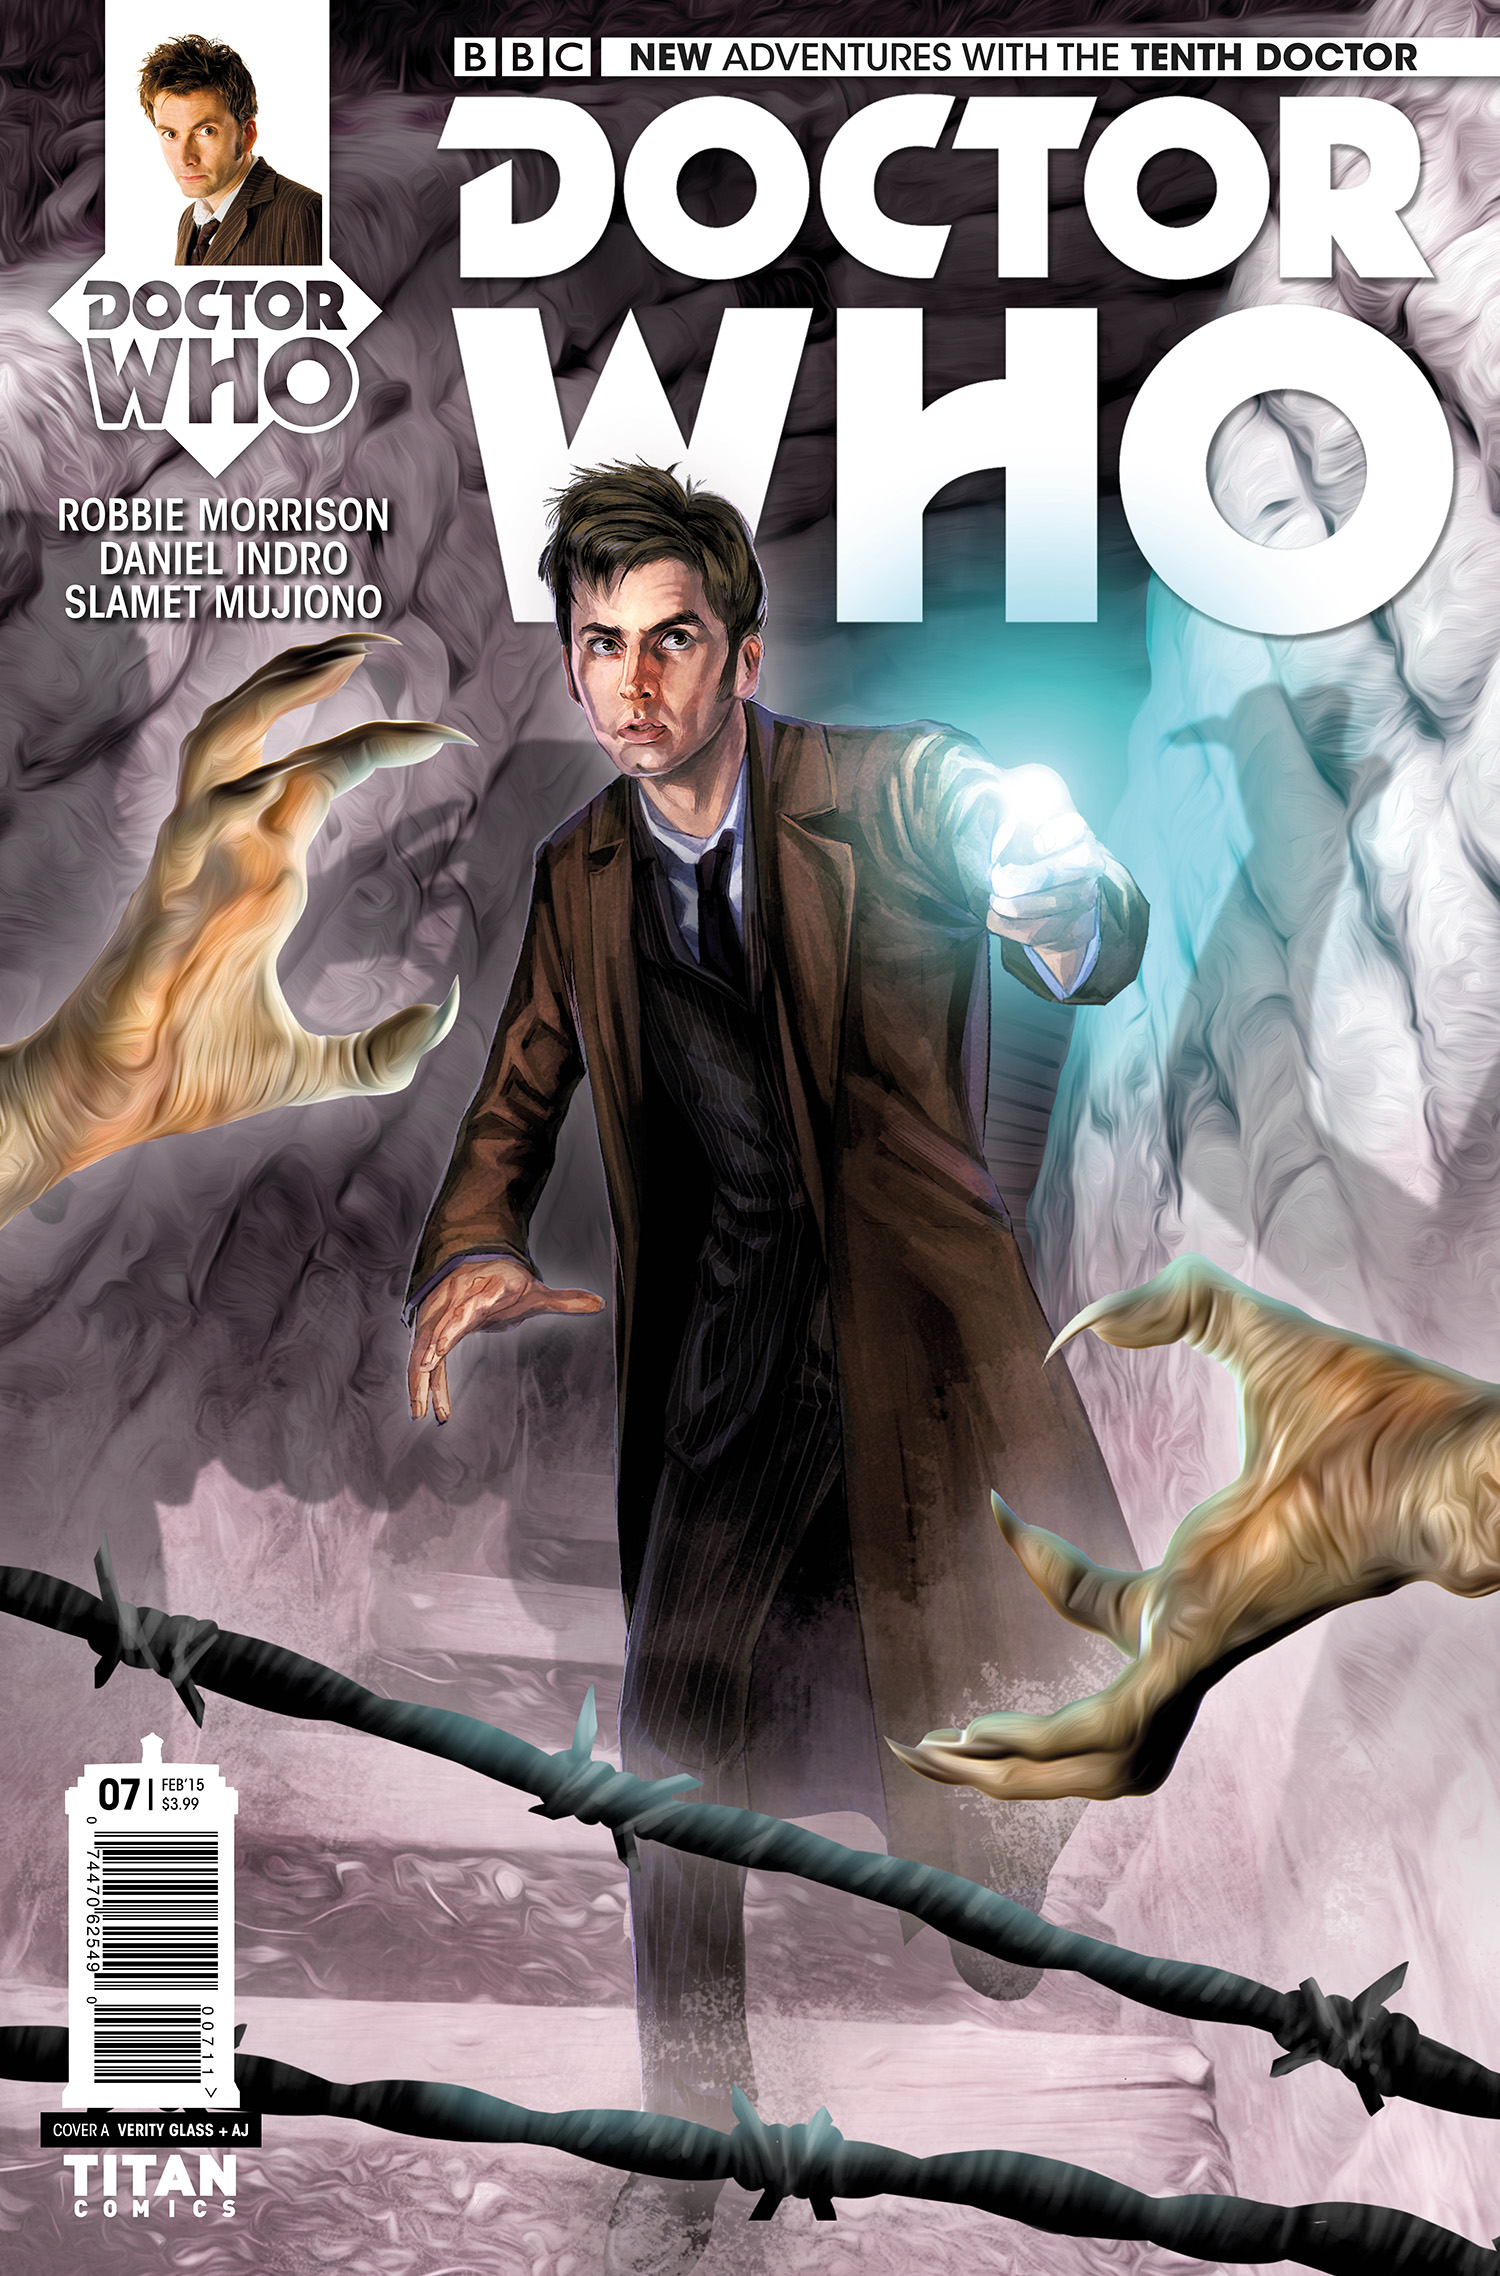 Doctor Who: Tenth Doctor #7